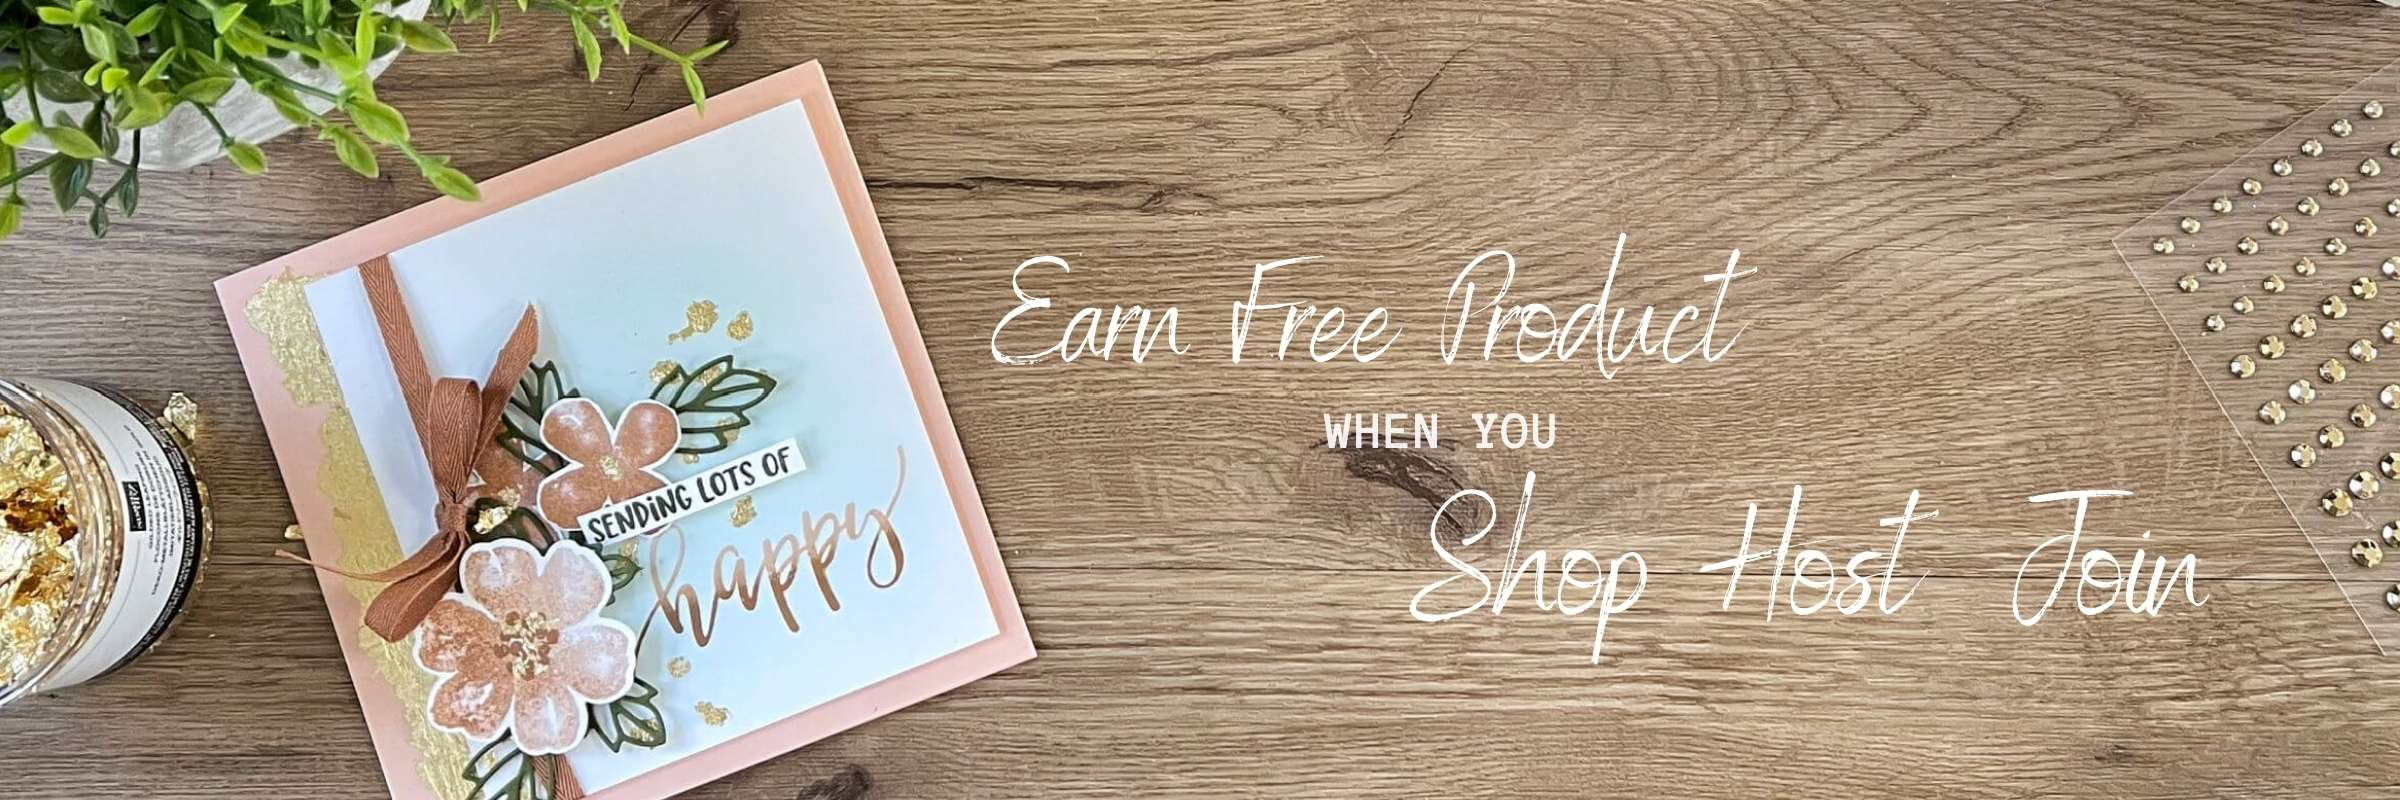 Buy Stampin Up products in the UK with Monica Gale